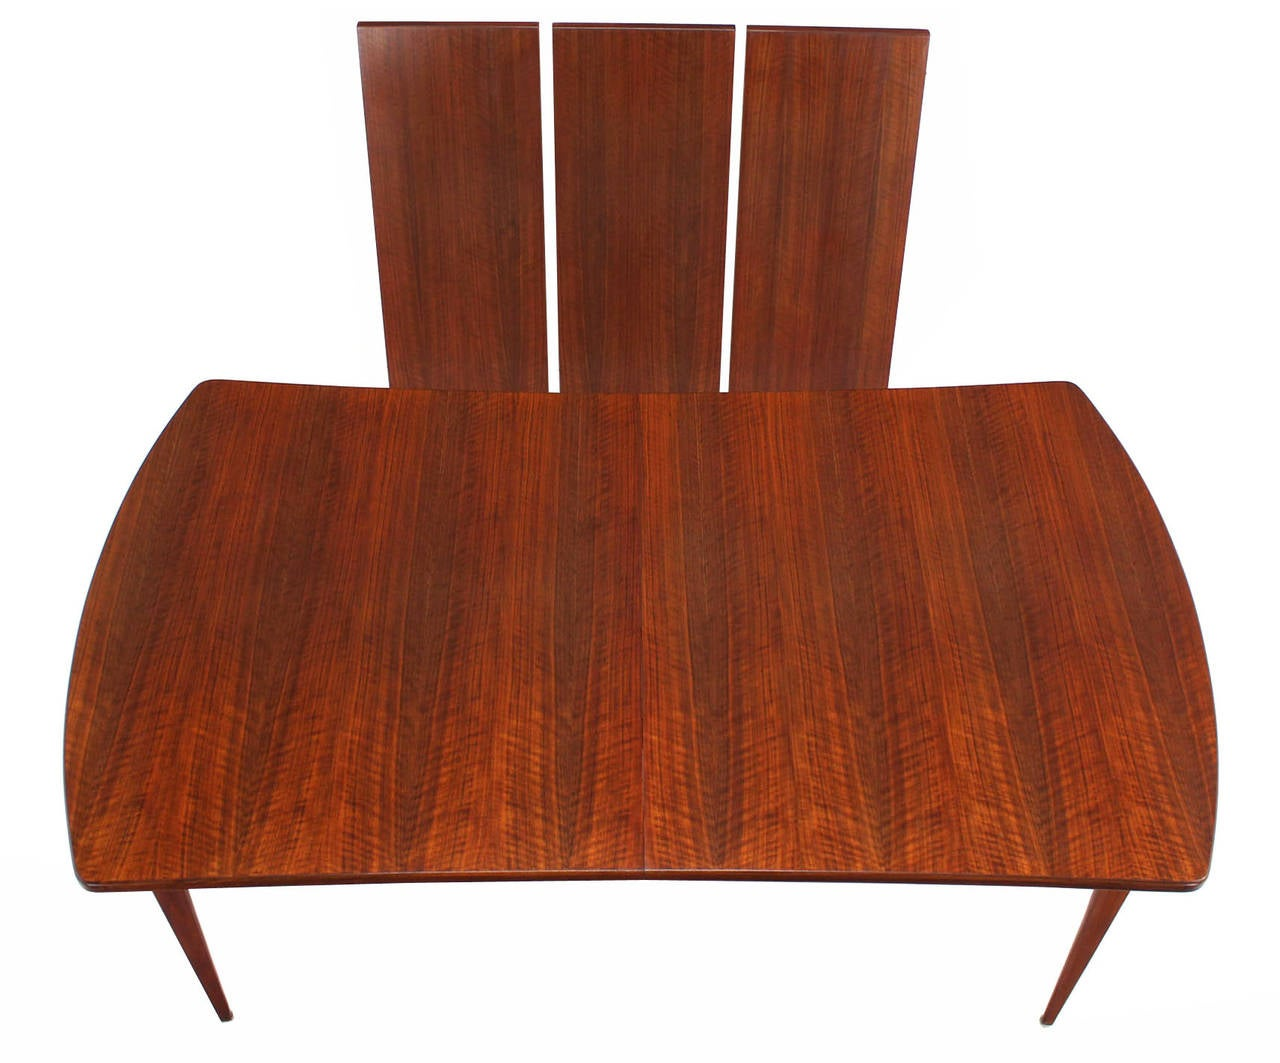 Mid-Century Modern Dining Table with Three Extension Leaves and Six Matching Chairs Set For Sale